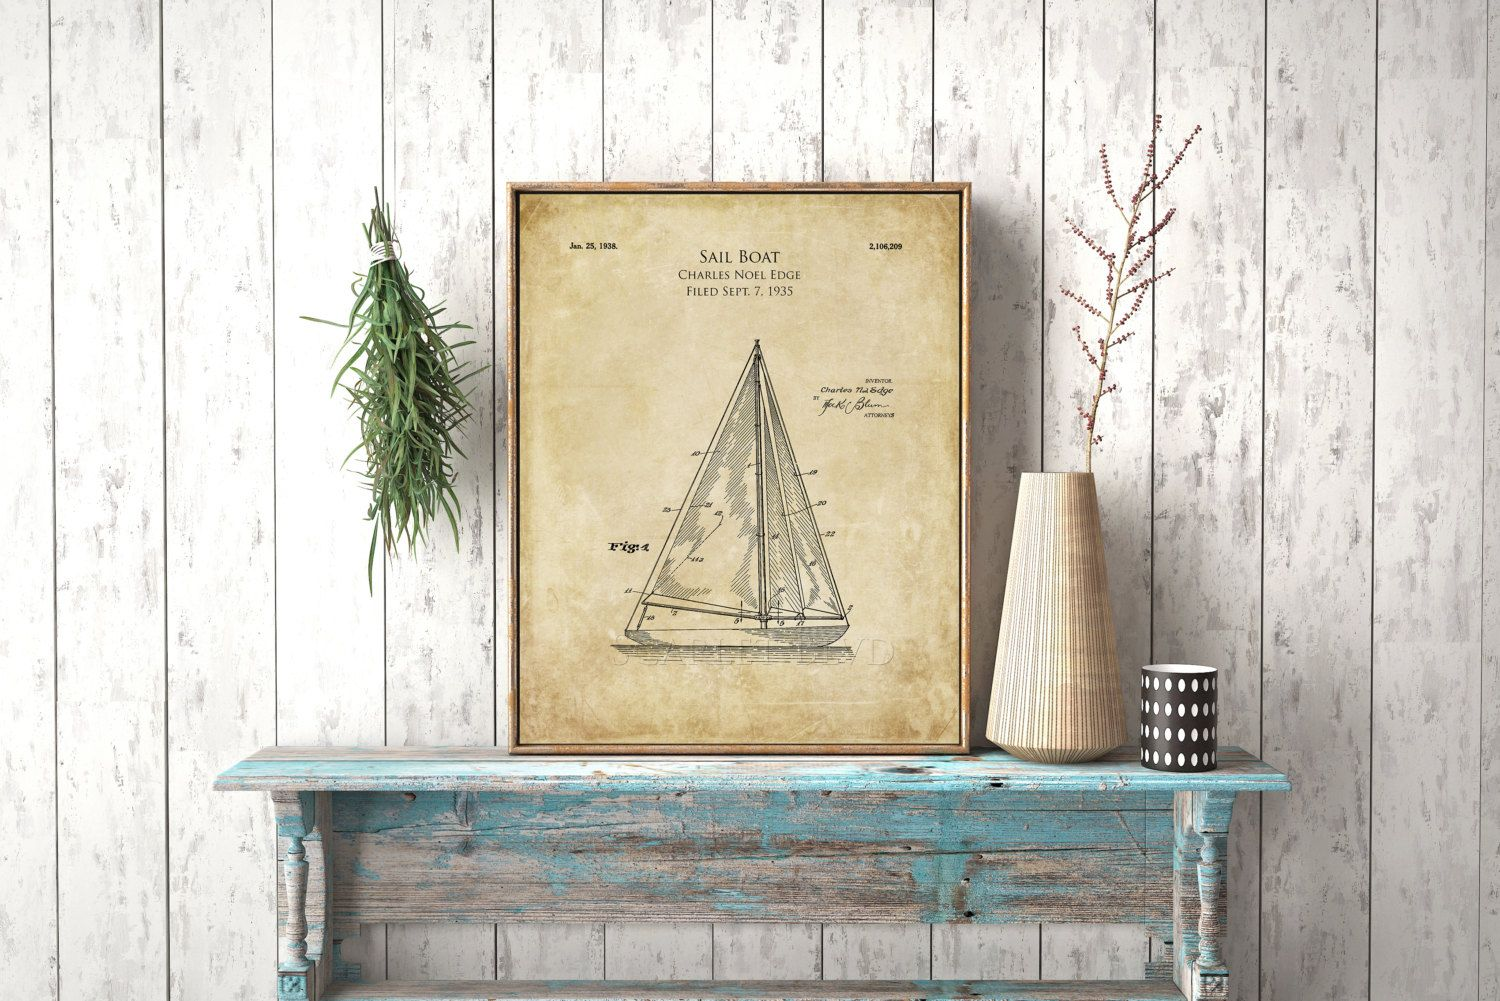 16 x 20 1930s sailboat blueprint sailboat patent prints sail boat 16 x 20 1930s sailboat blueprint sailboat patent prints sail boat art print patent poster blueprint art nautical decor beach decor malvernweather Images